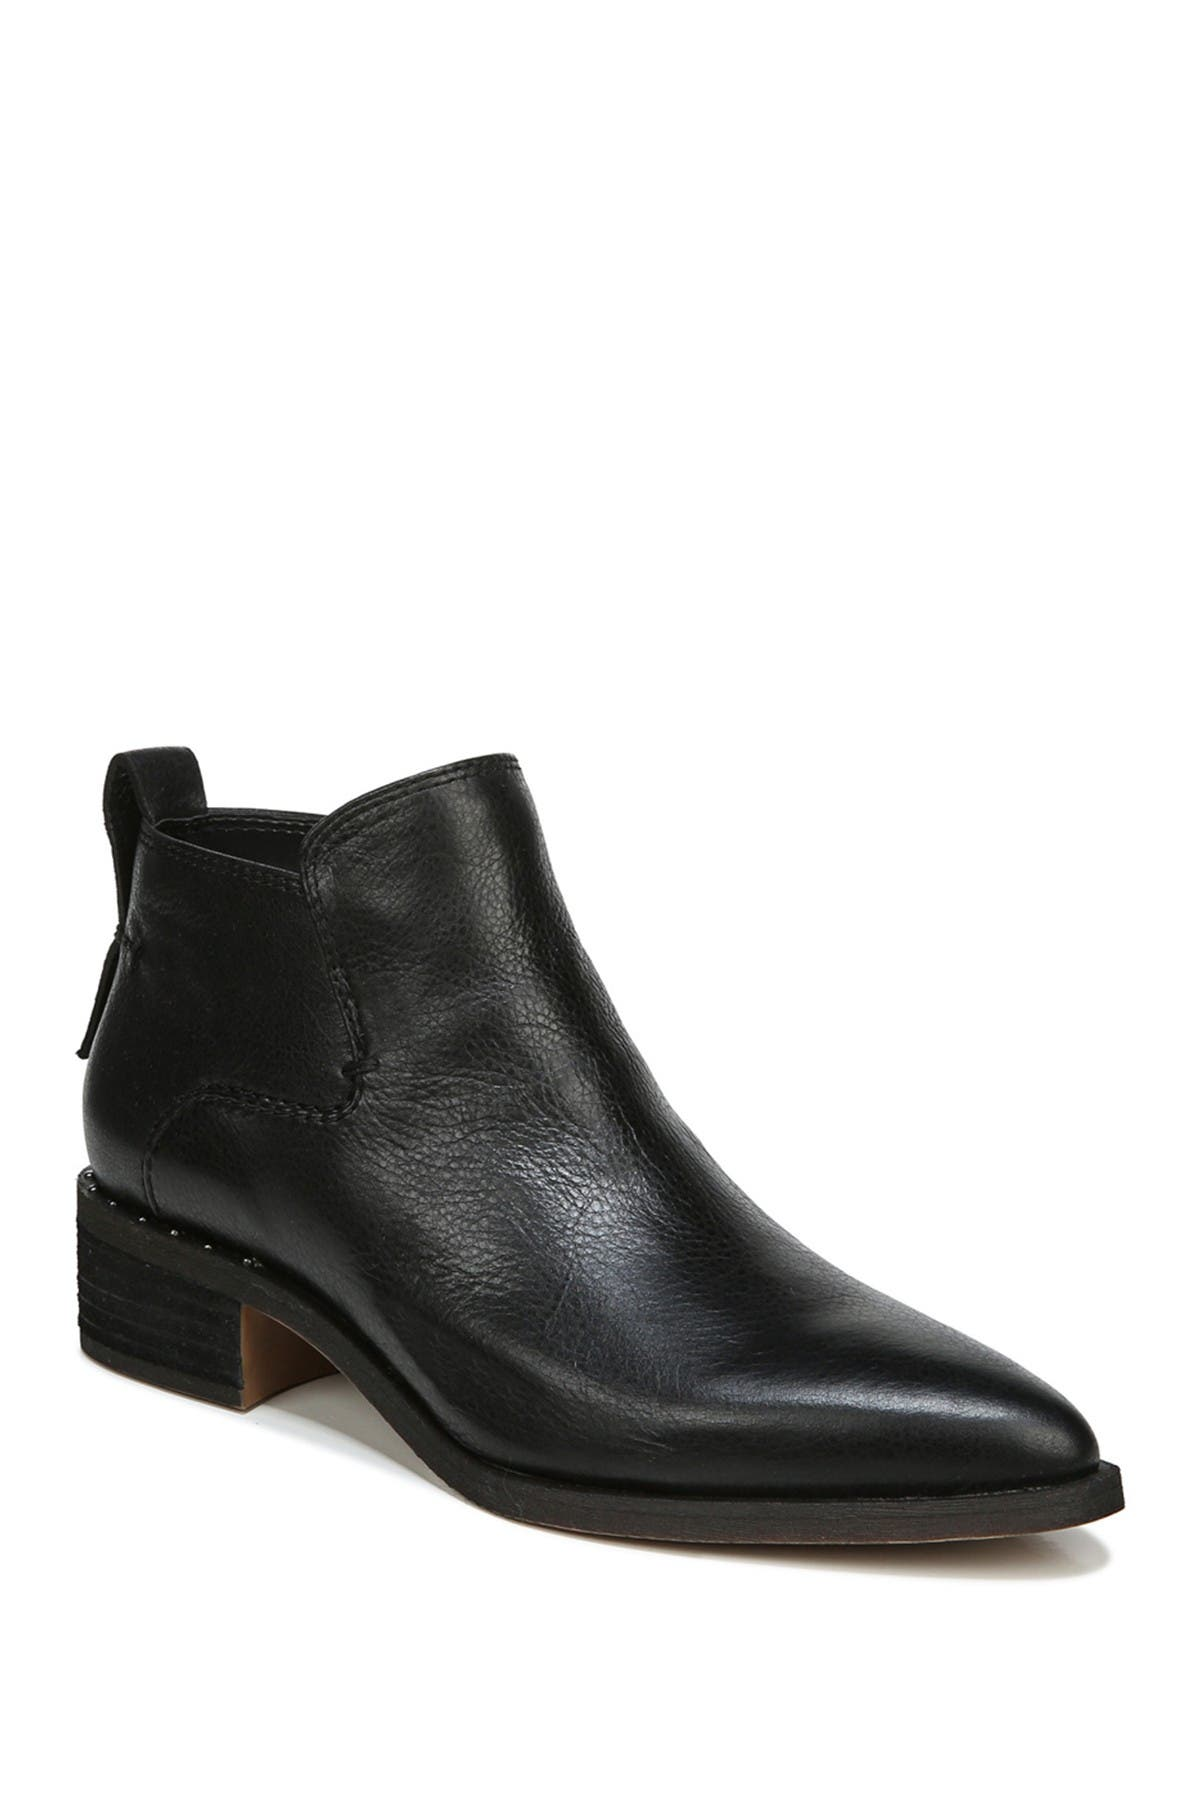 Image of Franco Sarto Damion Leather Ankle Bootie